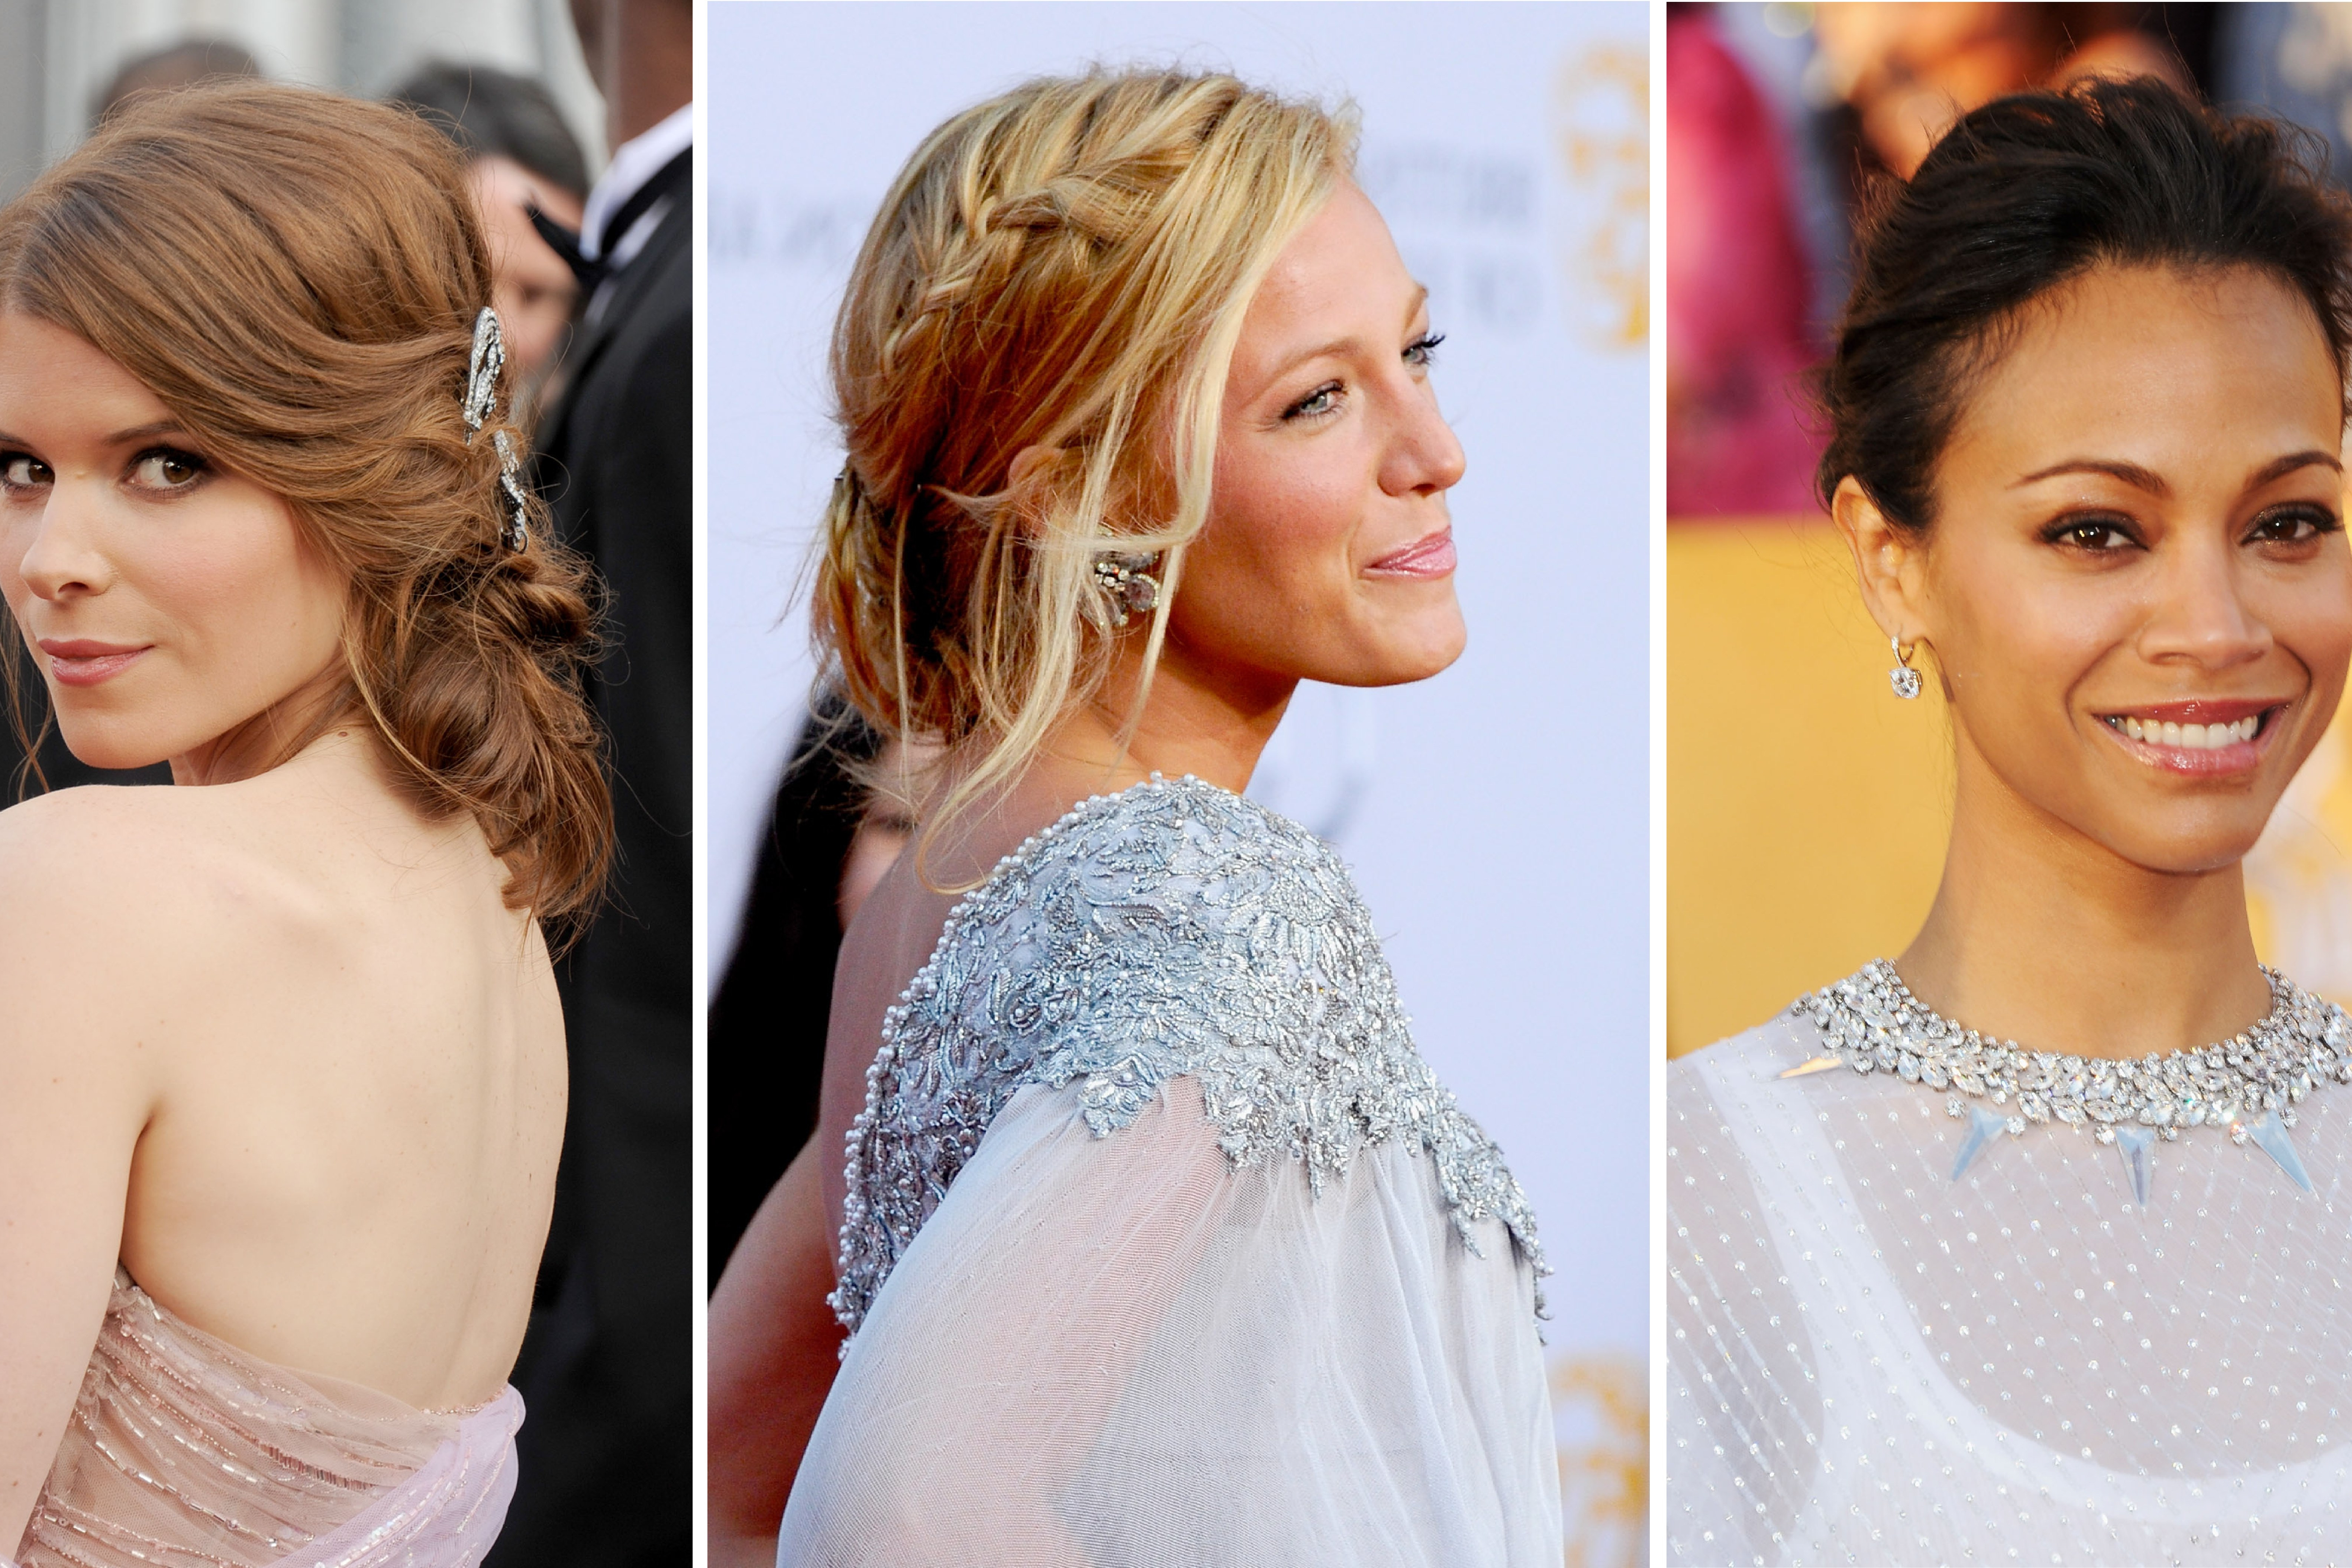 17 Wedding Hairstyles To Try For Every Length – Allure With Regard To Well Known Brushed Back Beauty Hairstyles For Wedding (View 1 of 20)